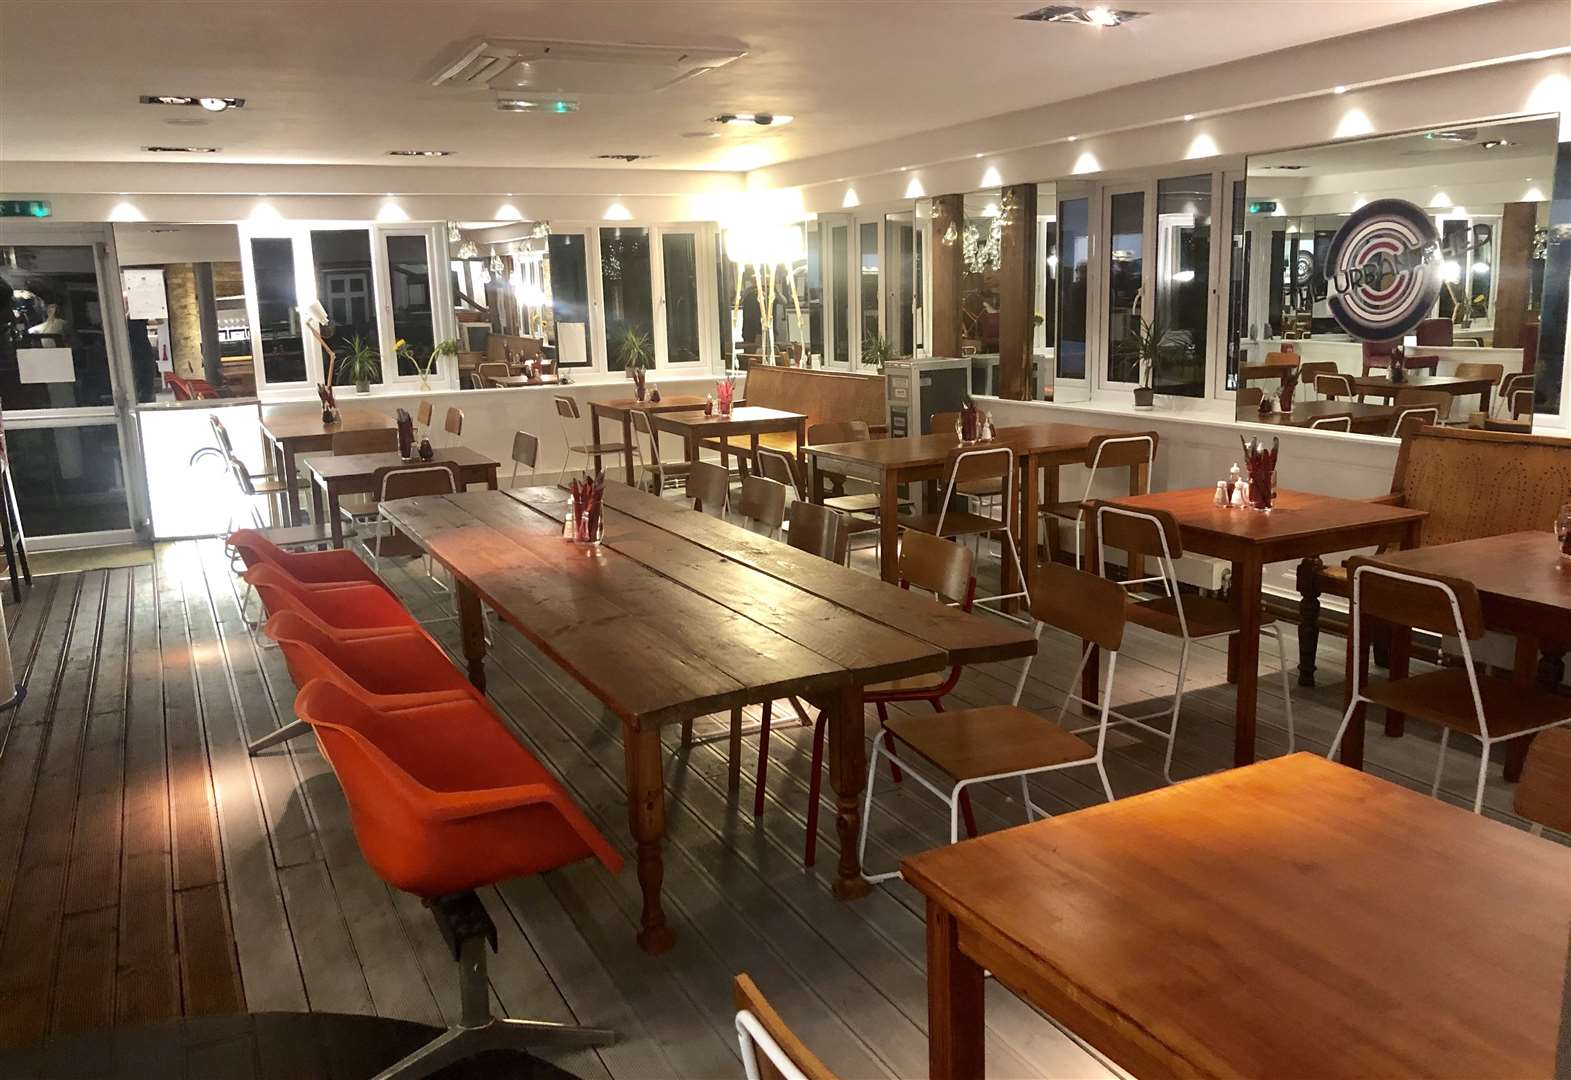 Review: The Phoenix Bar and Restaurant in Histon